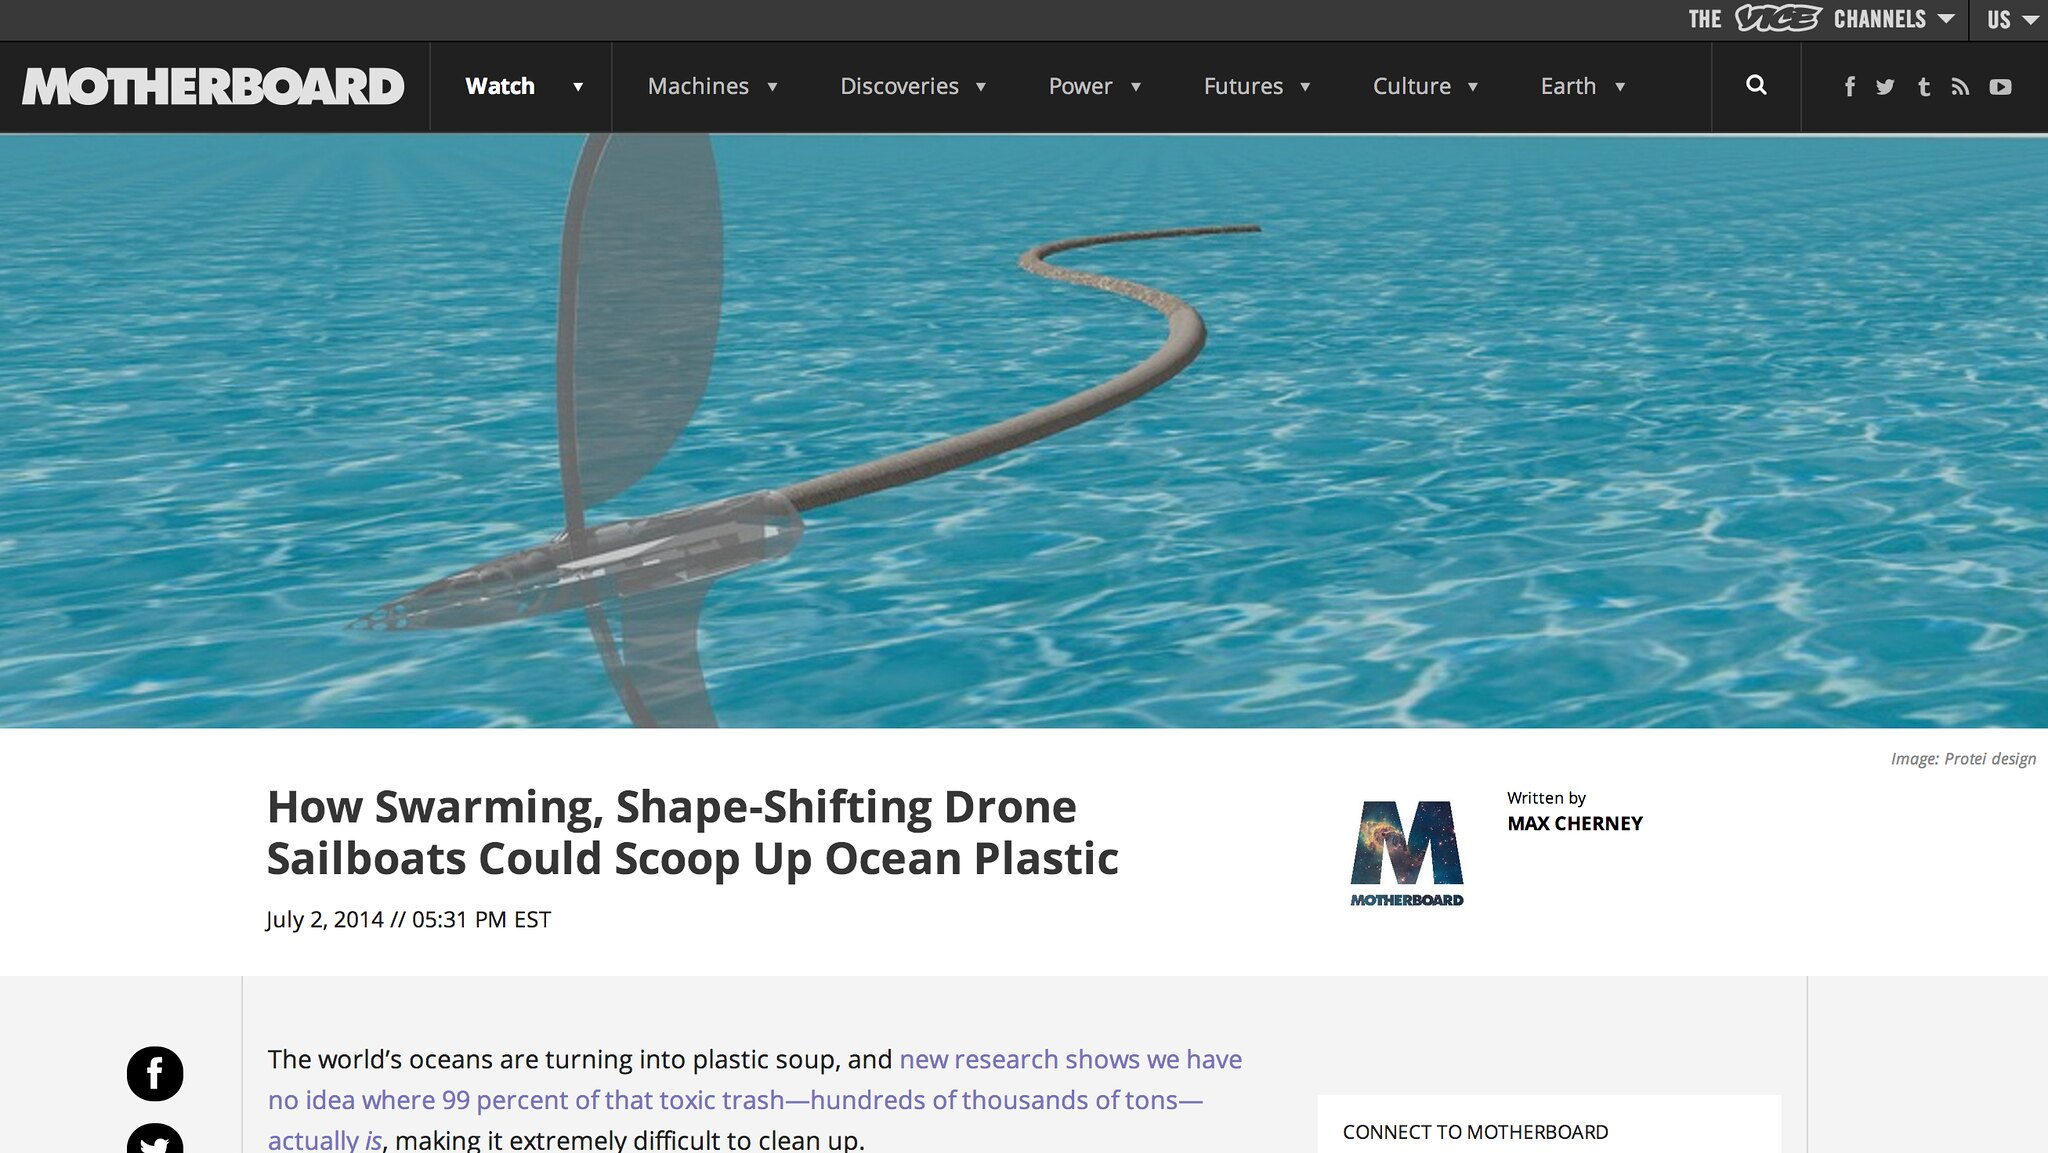 How Swarming Shape-Shifting Sailing robots could could scoop up the ocean